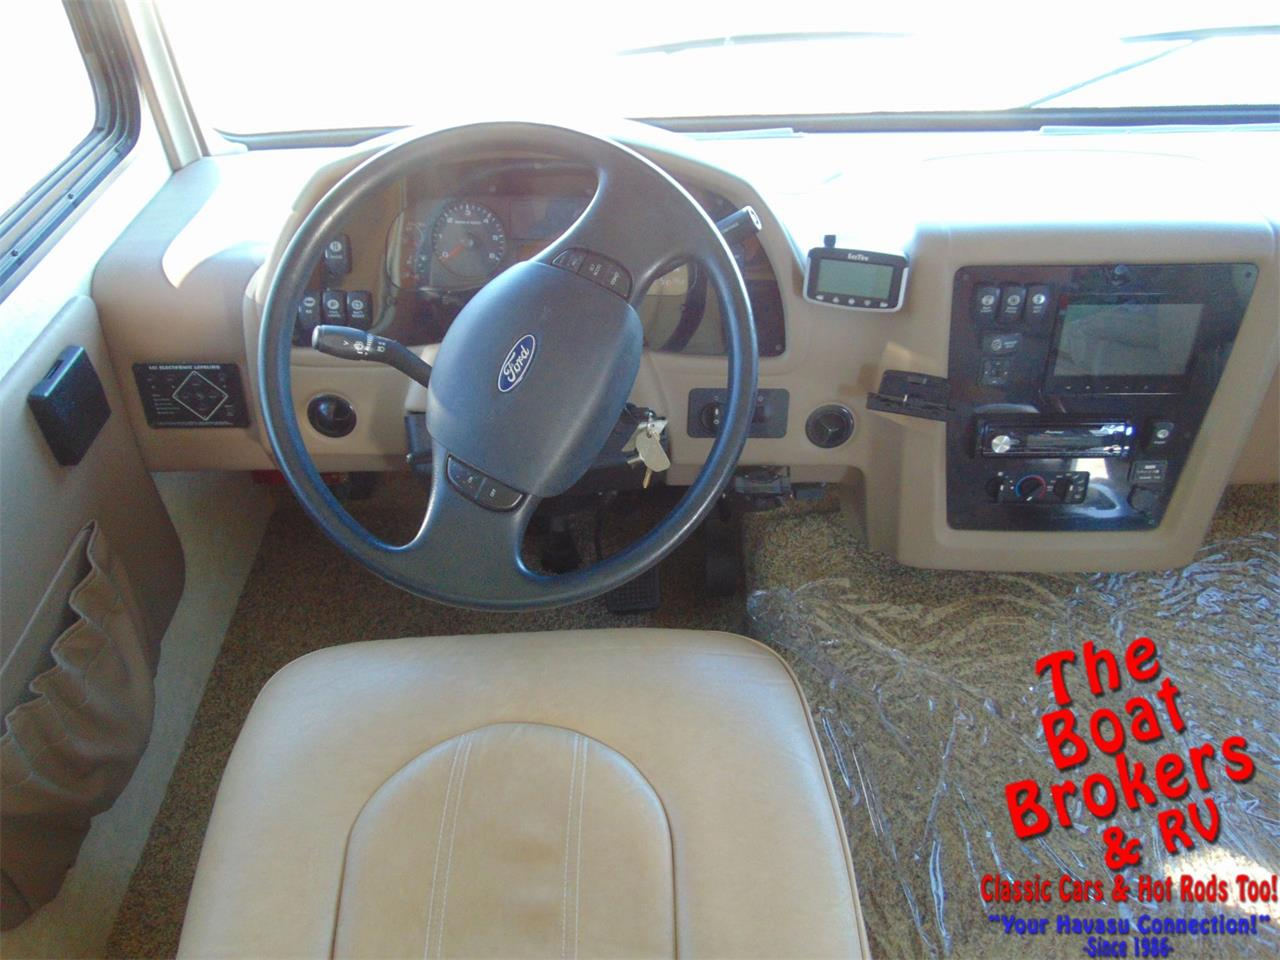 Large Picture of 2012 Forest River Recreational Vehicle located in Arizona - $68,995.00 Offered by The Boat Brokers - Q5L8